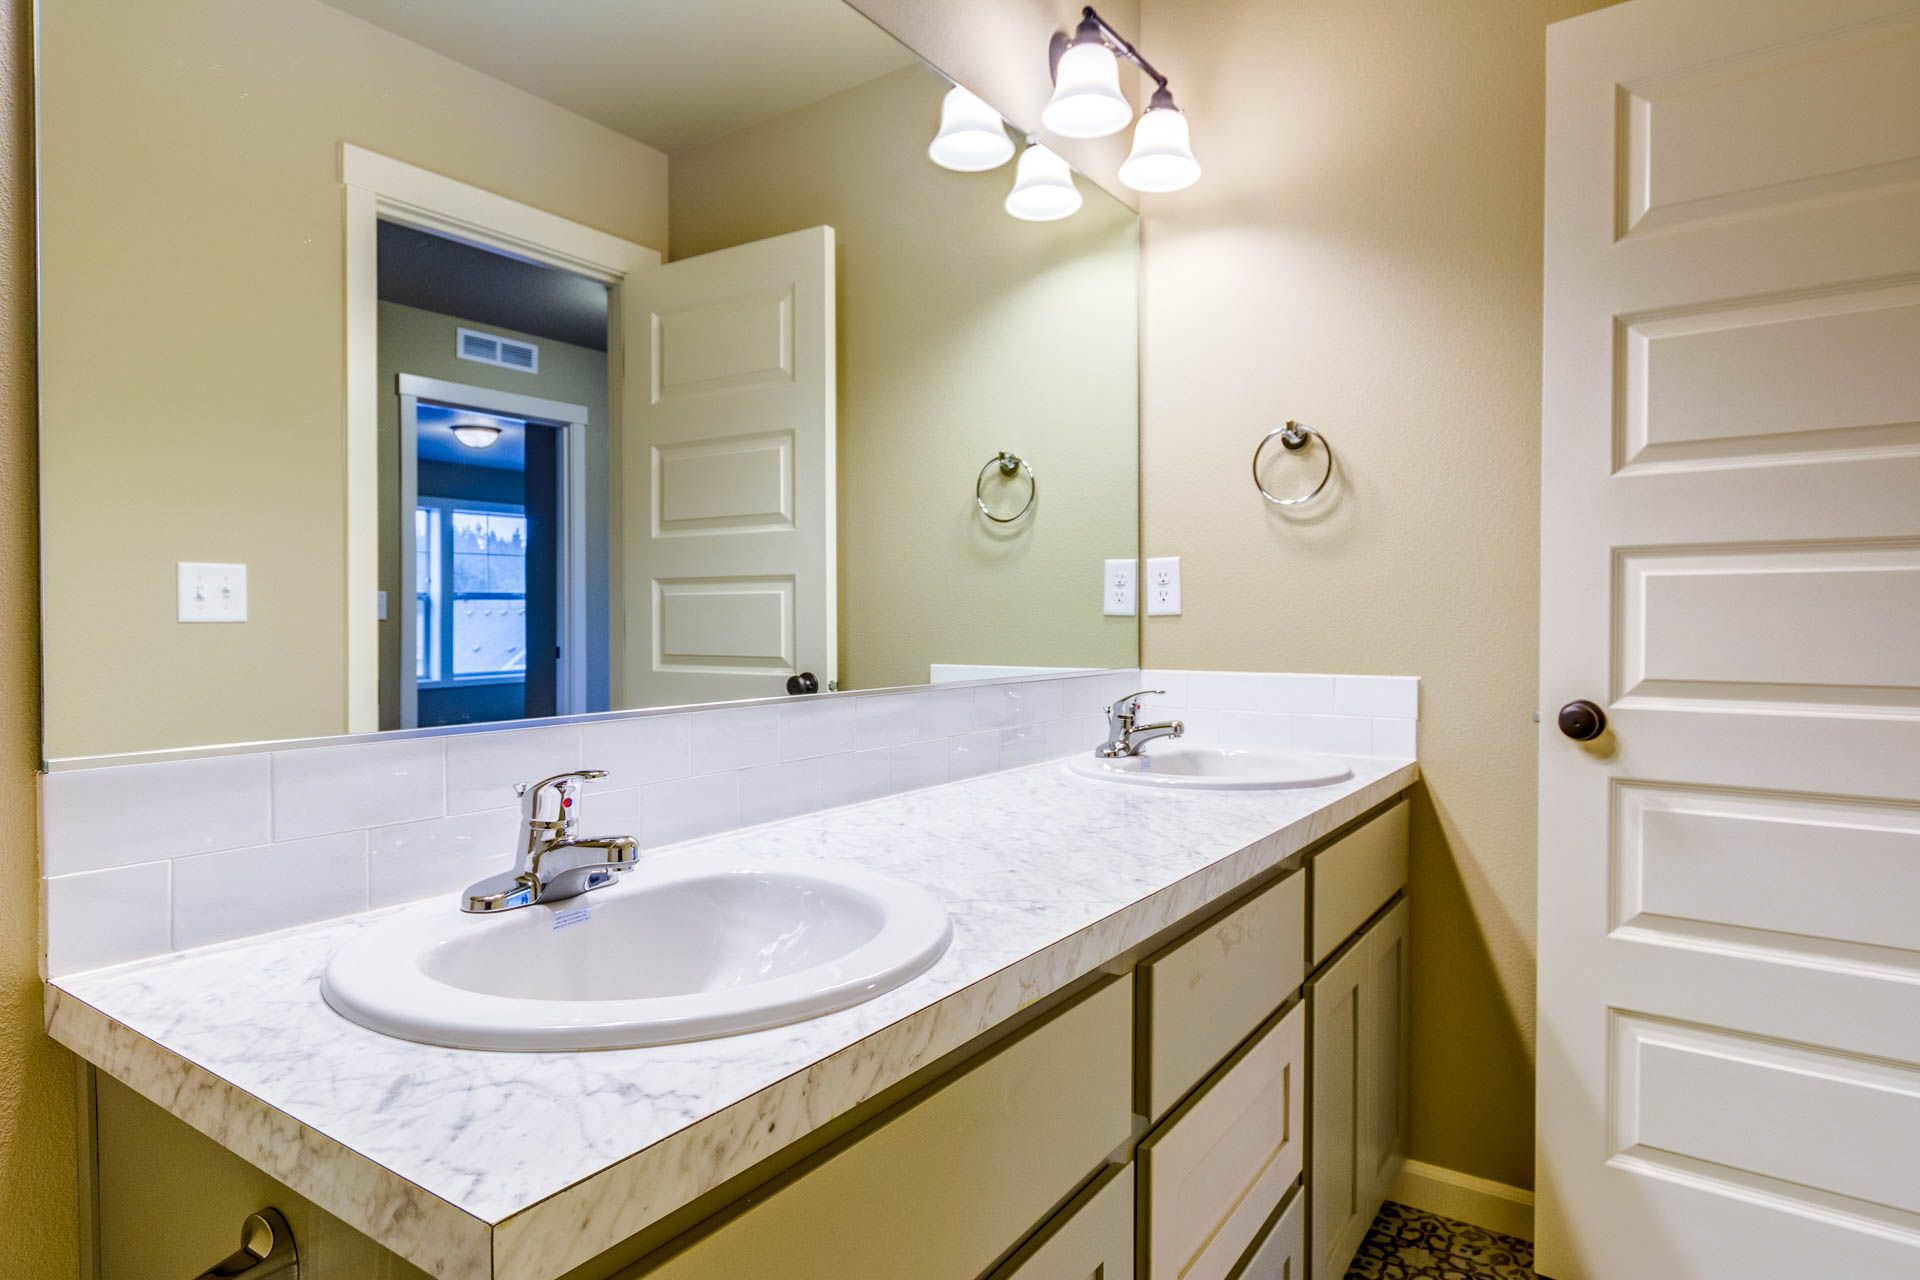 Bathroom featured in the 1867 By Aho Construction I, Inc. in Yakima, WA